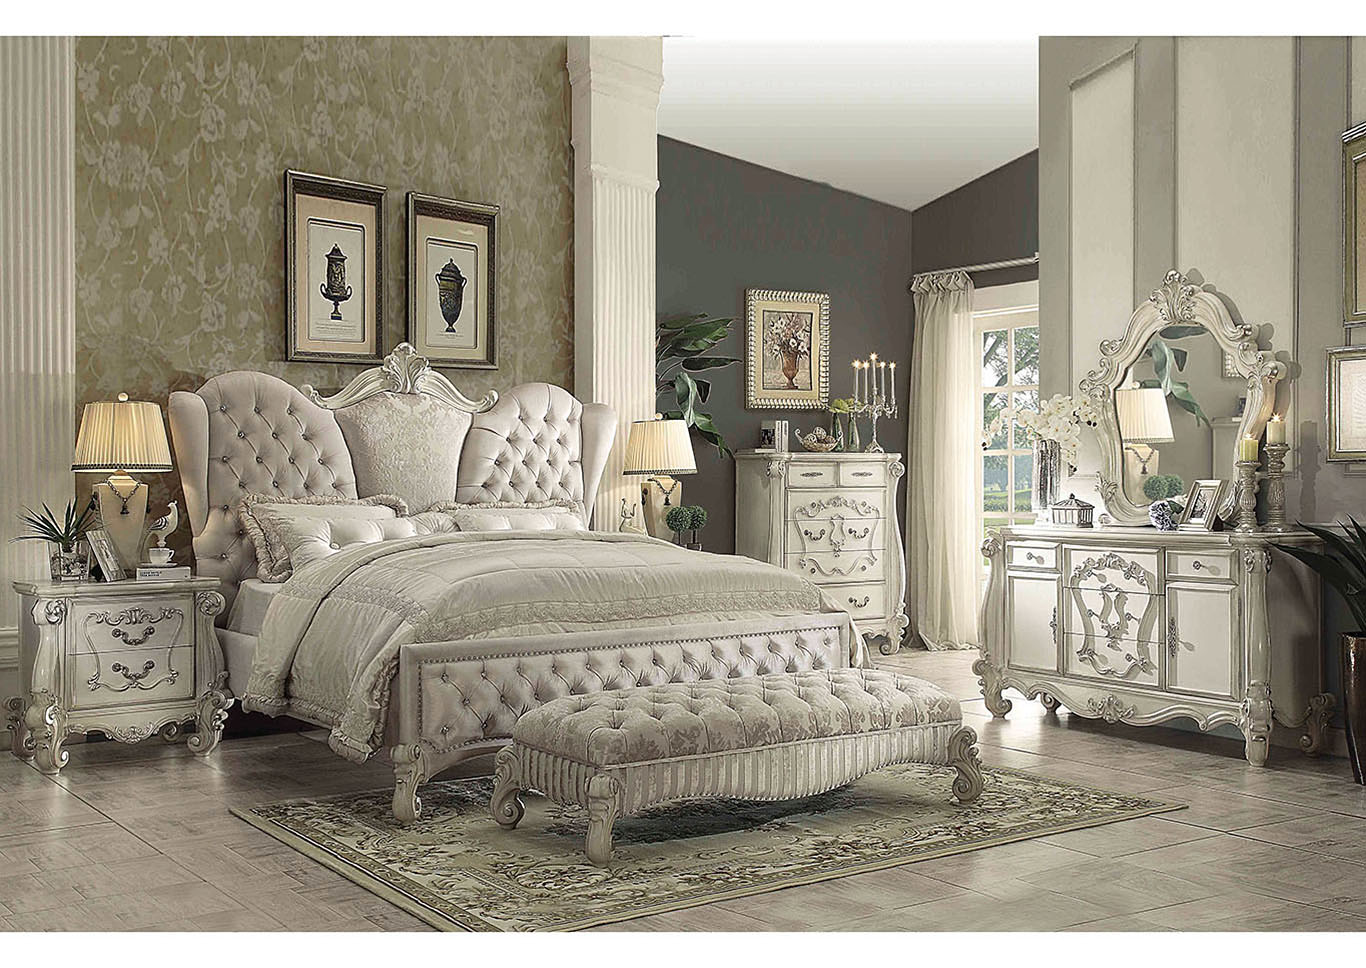 Versailles Ivory California King Bed w/Dresser and Mirror,Acme